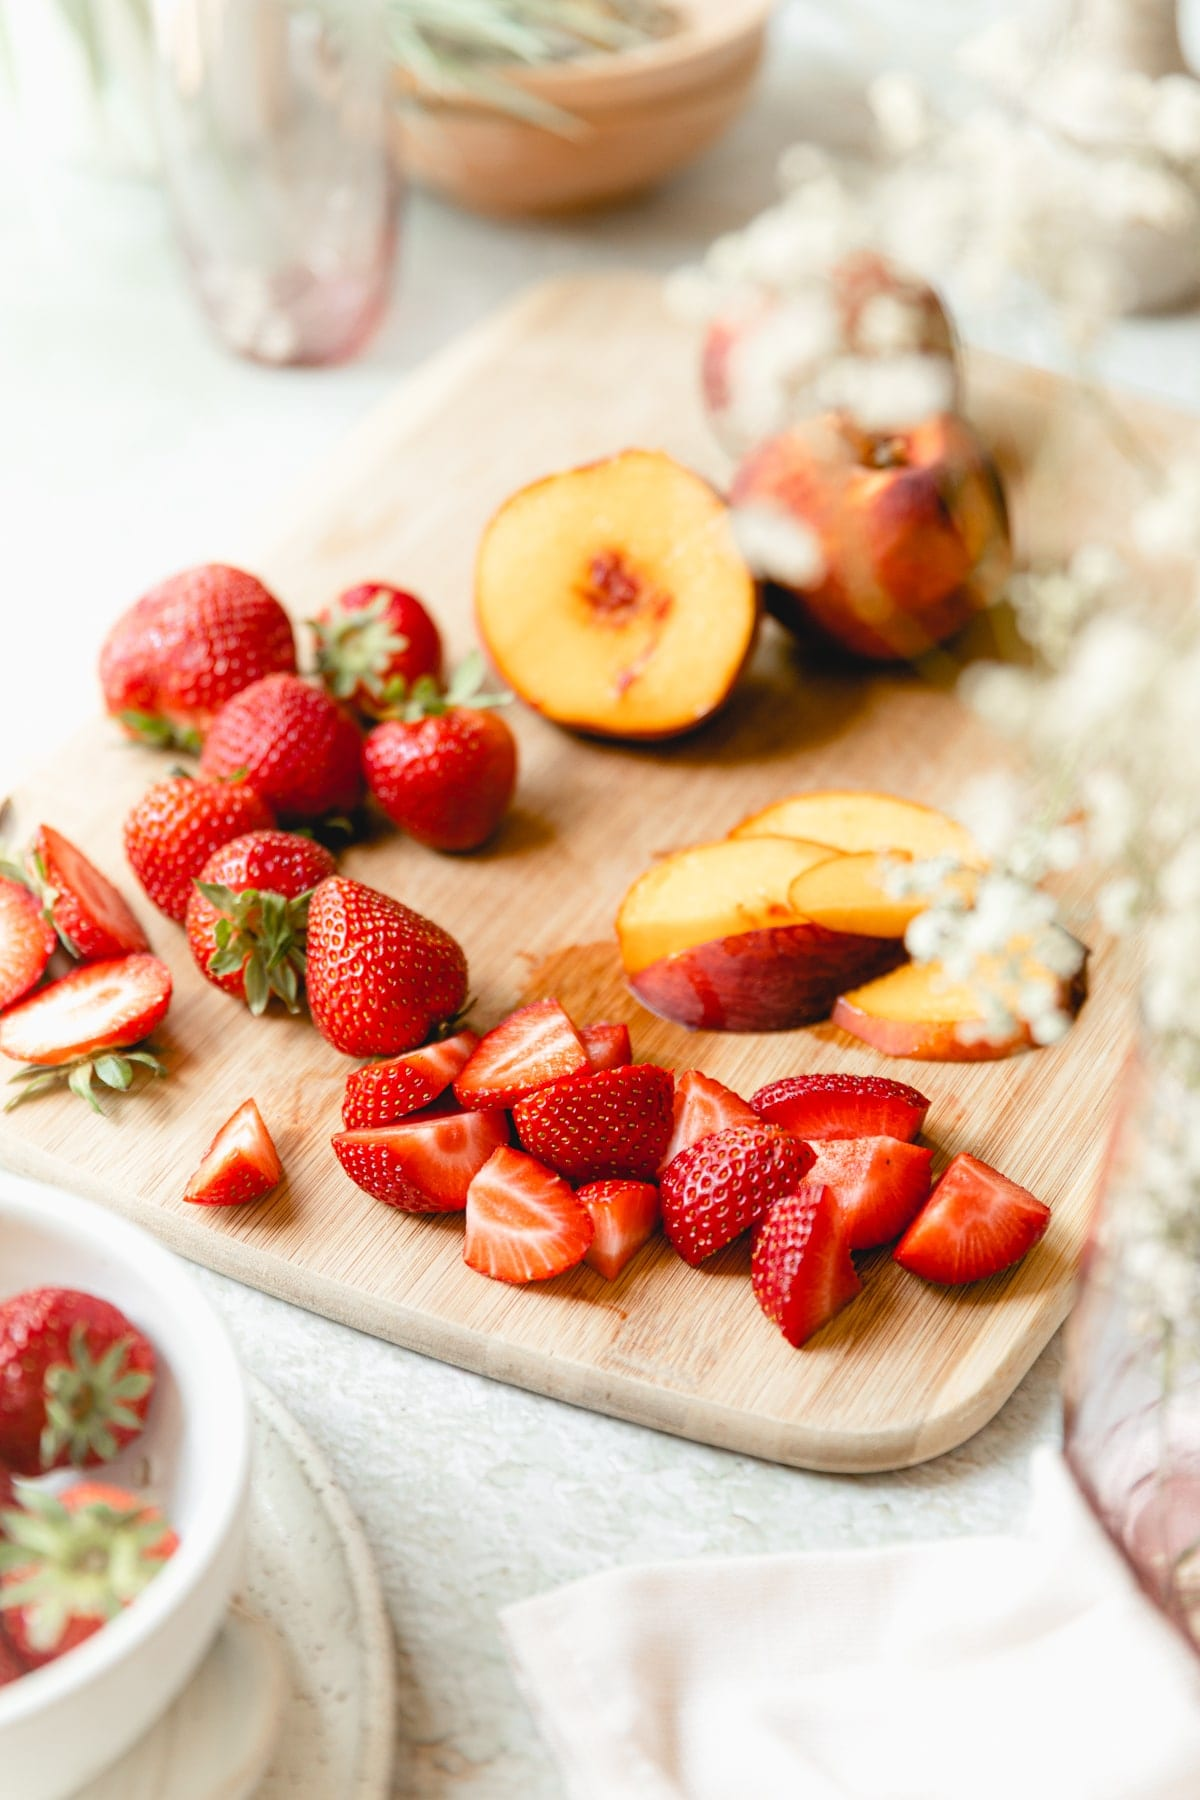 cut strawberries and peaches on a wooden cutting board